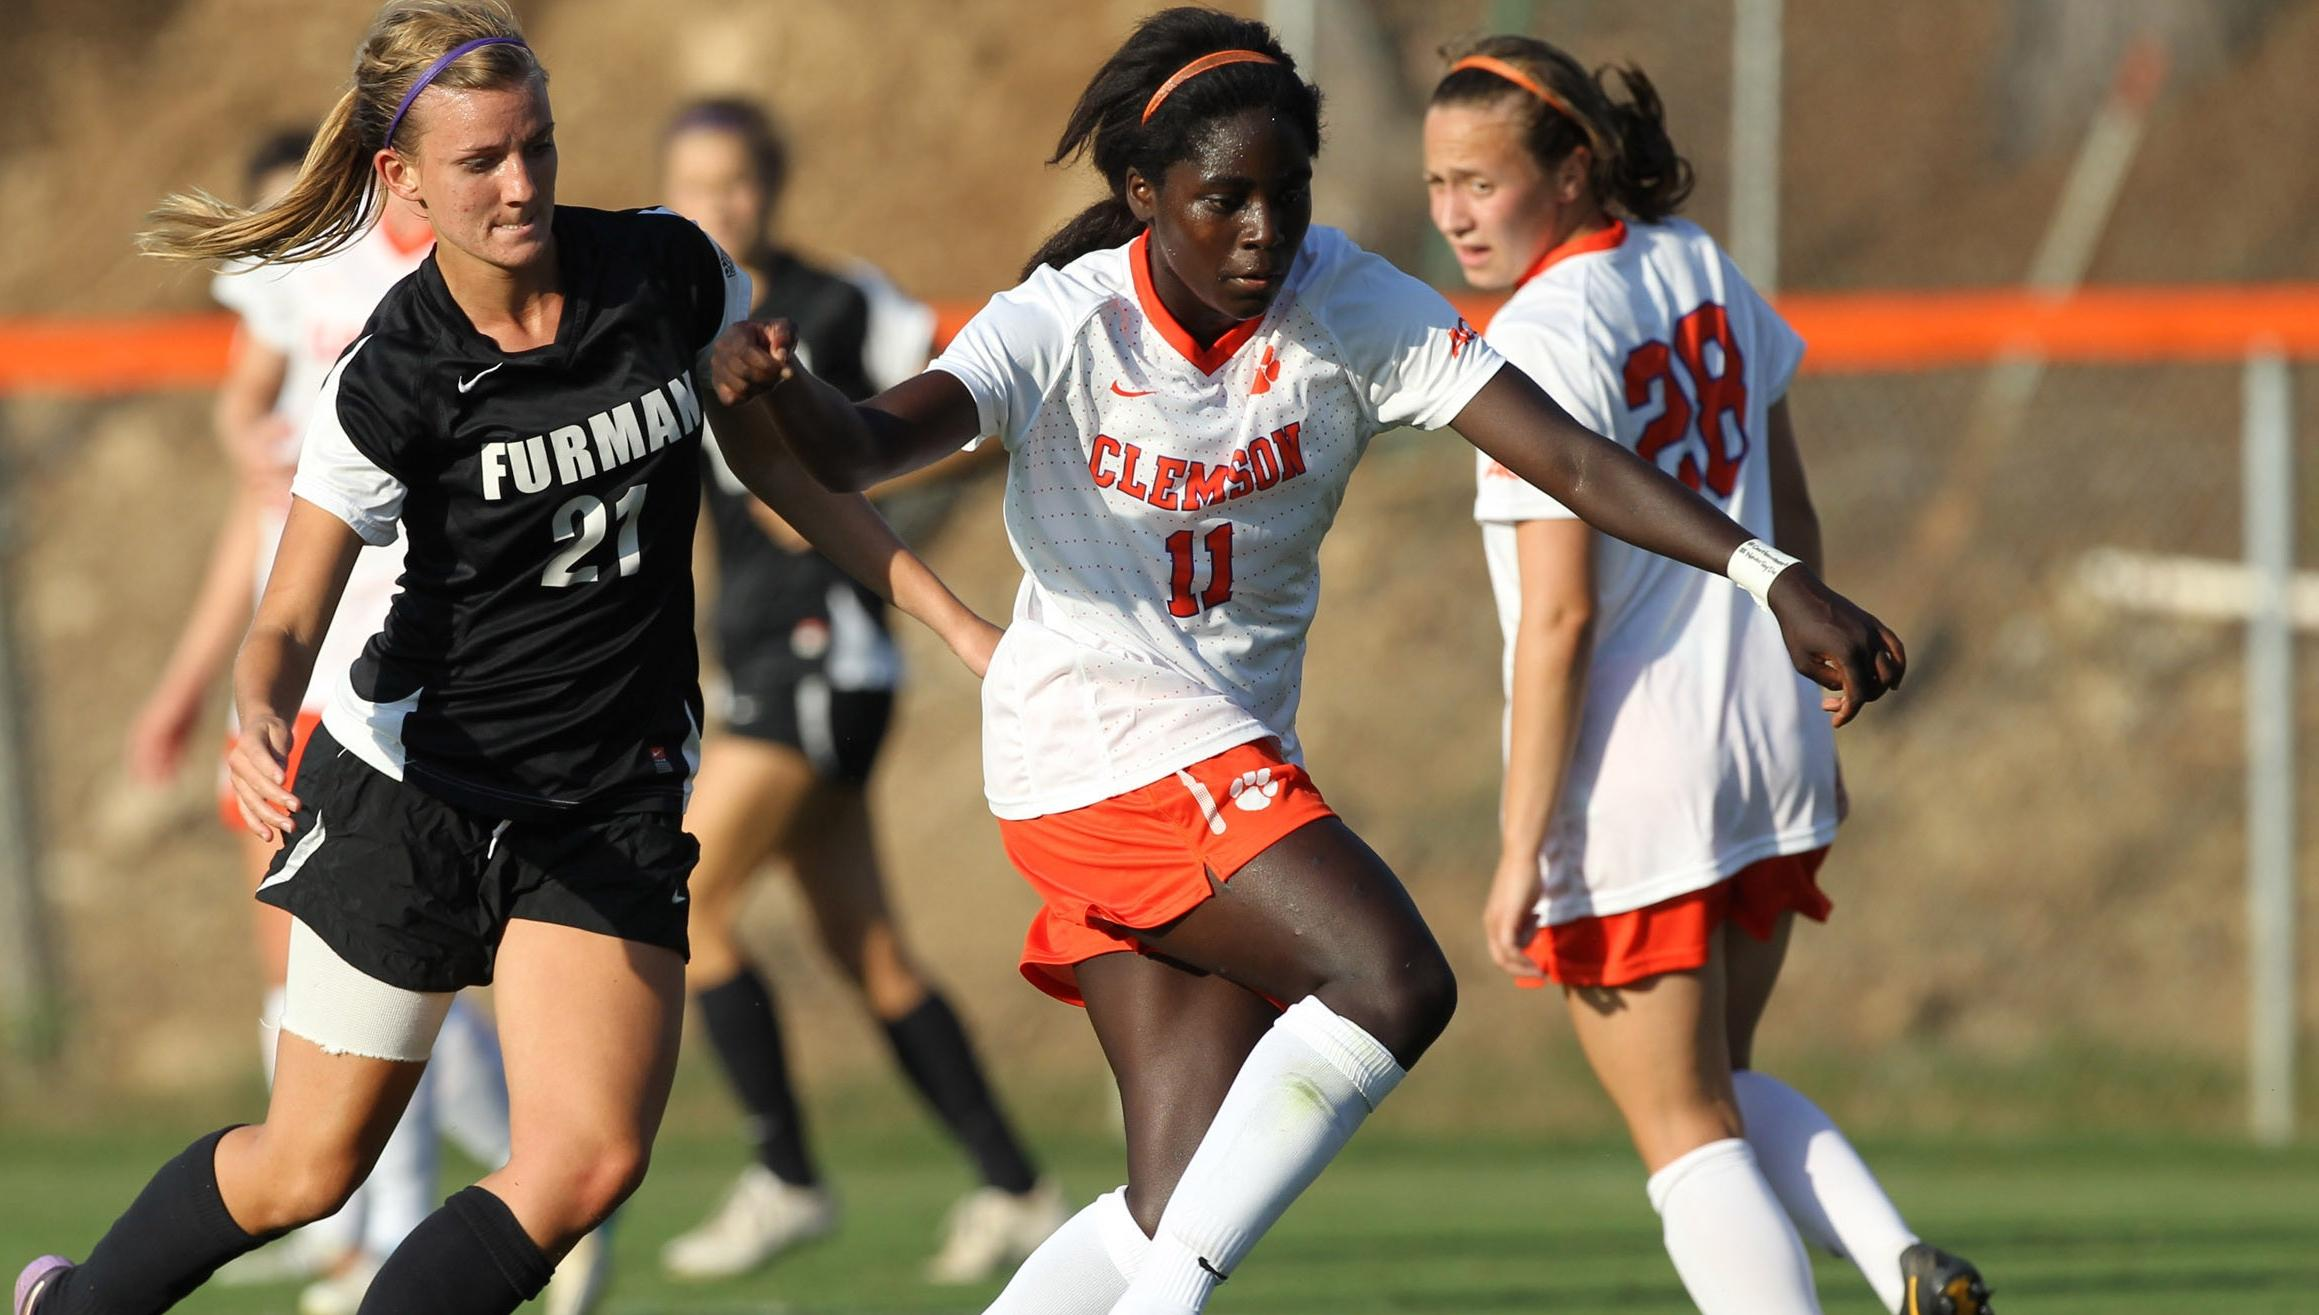 Atanda's Goal Lifts Tigers to 1-0 Victory Over Furman Sunday